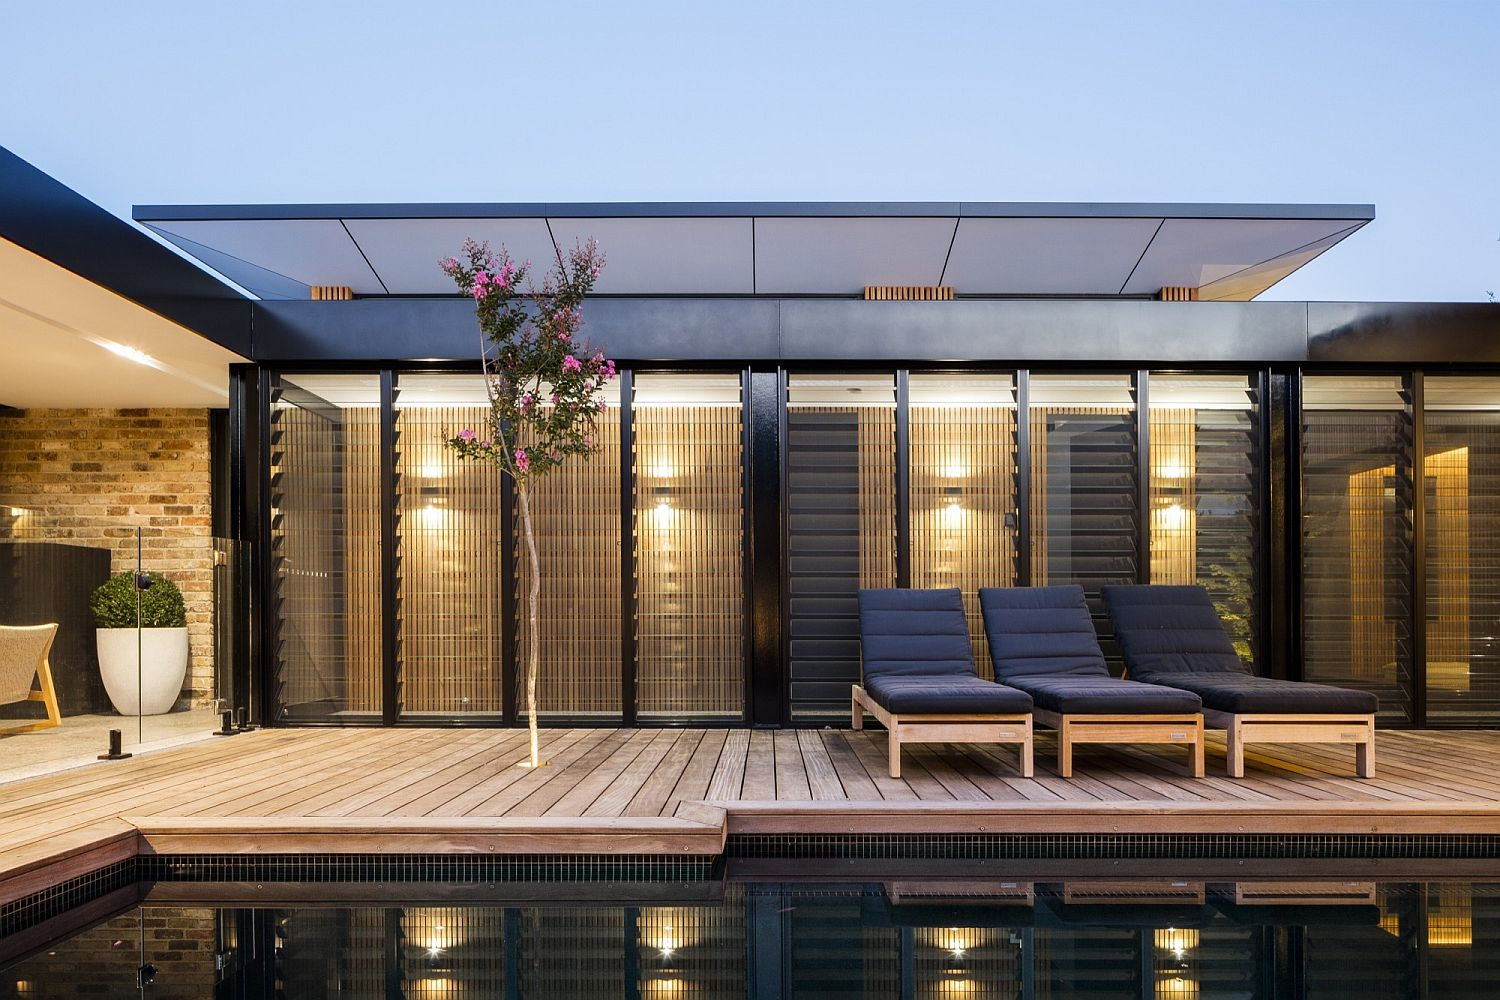 Series of sliding glass doors and additional features transform the Aussie home into an eco-friendly hub